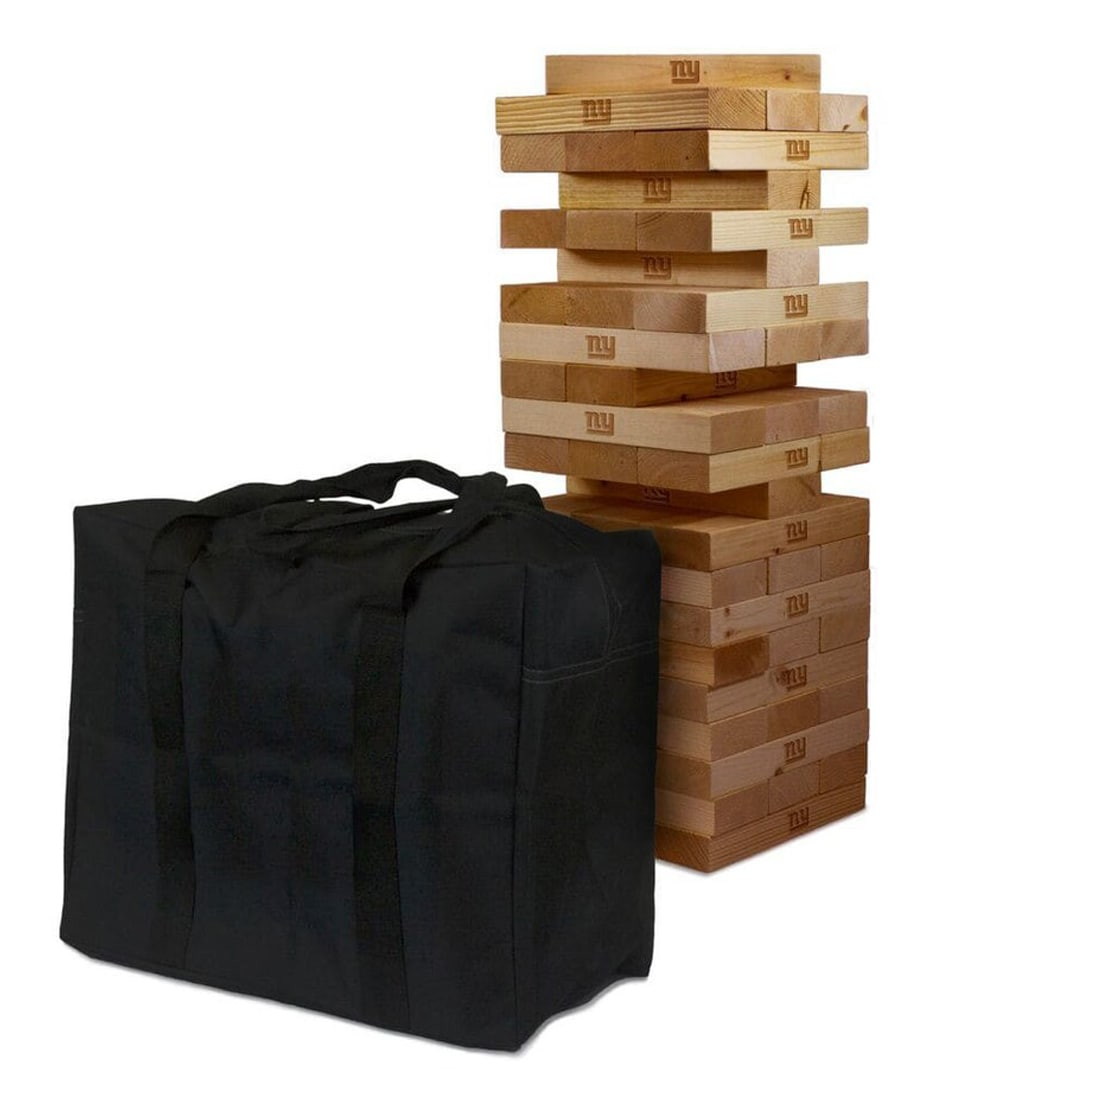 New York Giants Giant Wooden Tumble Tower Game